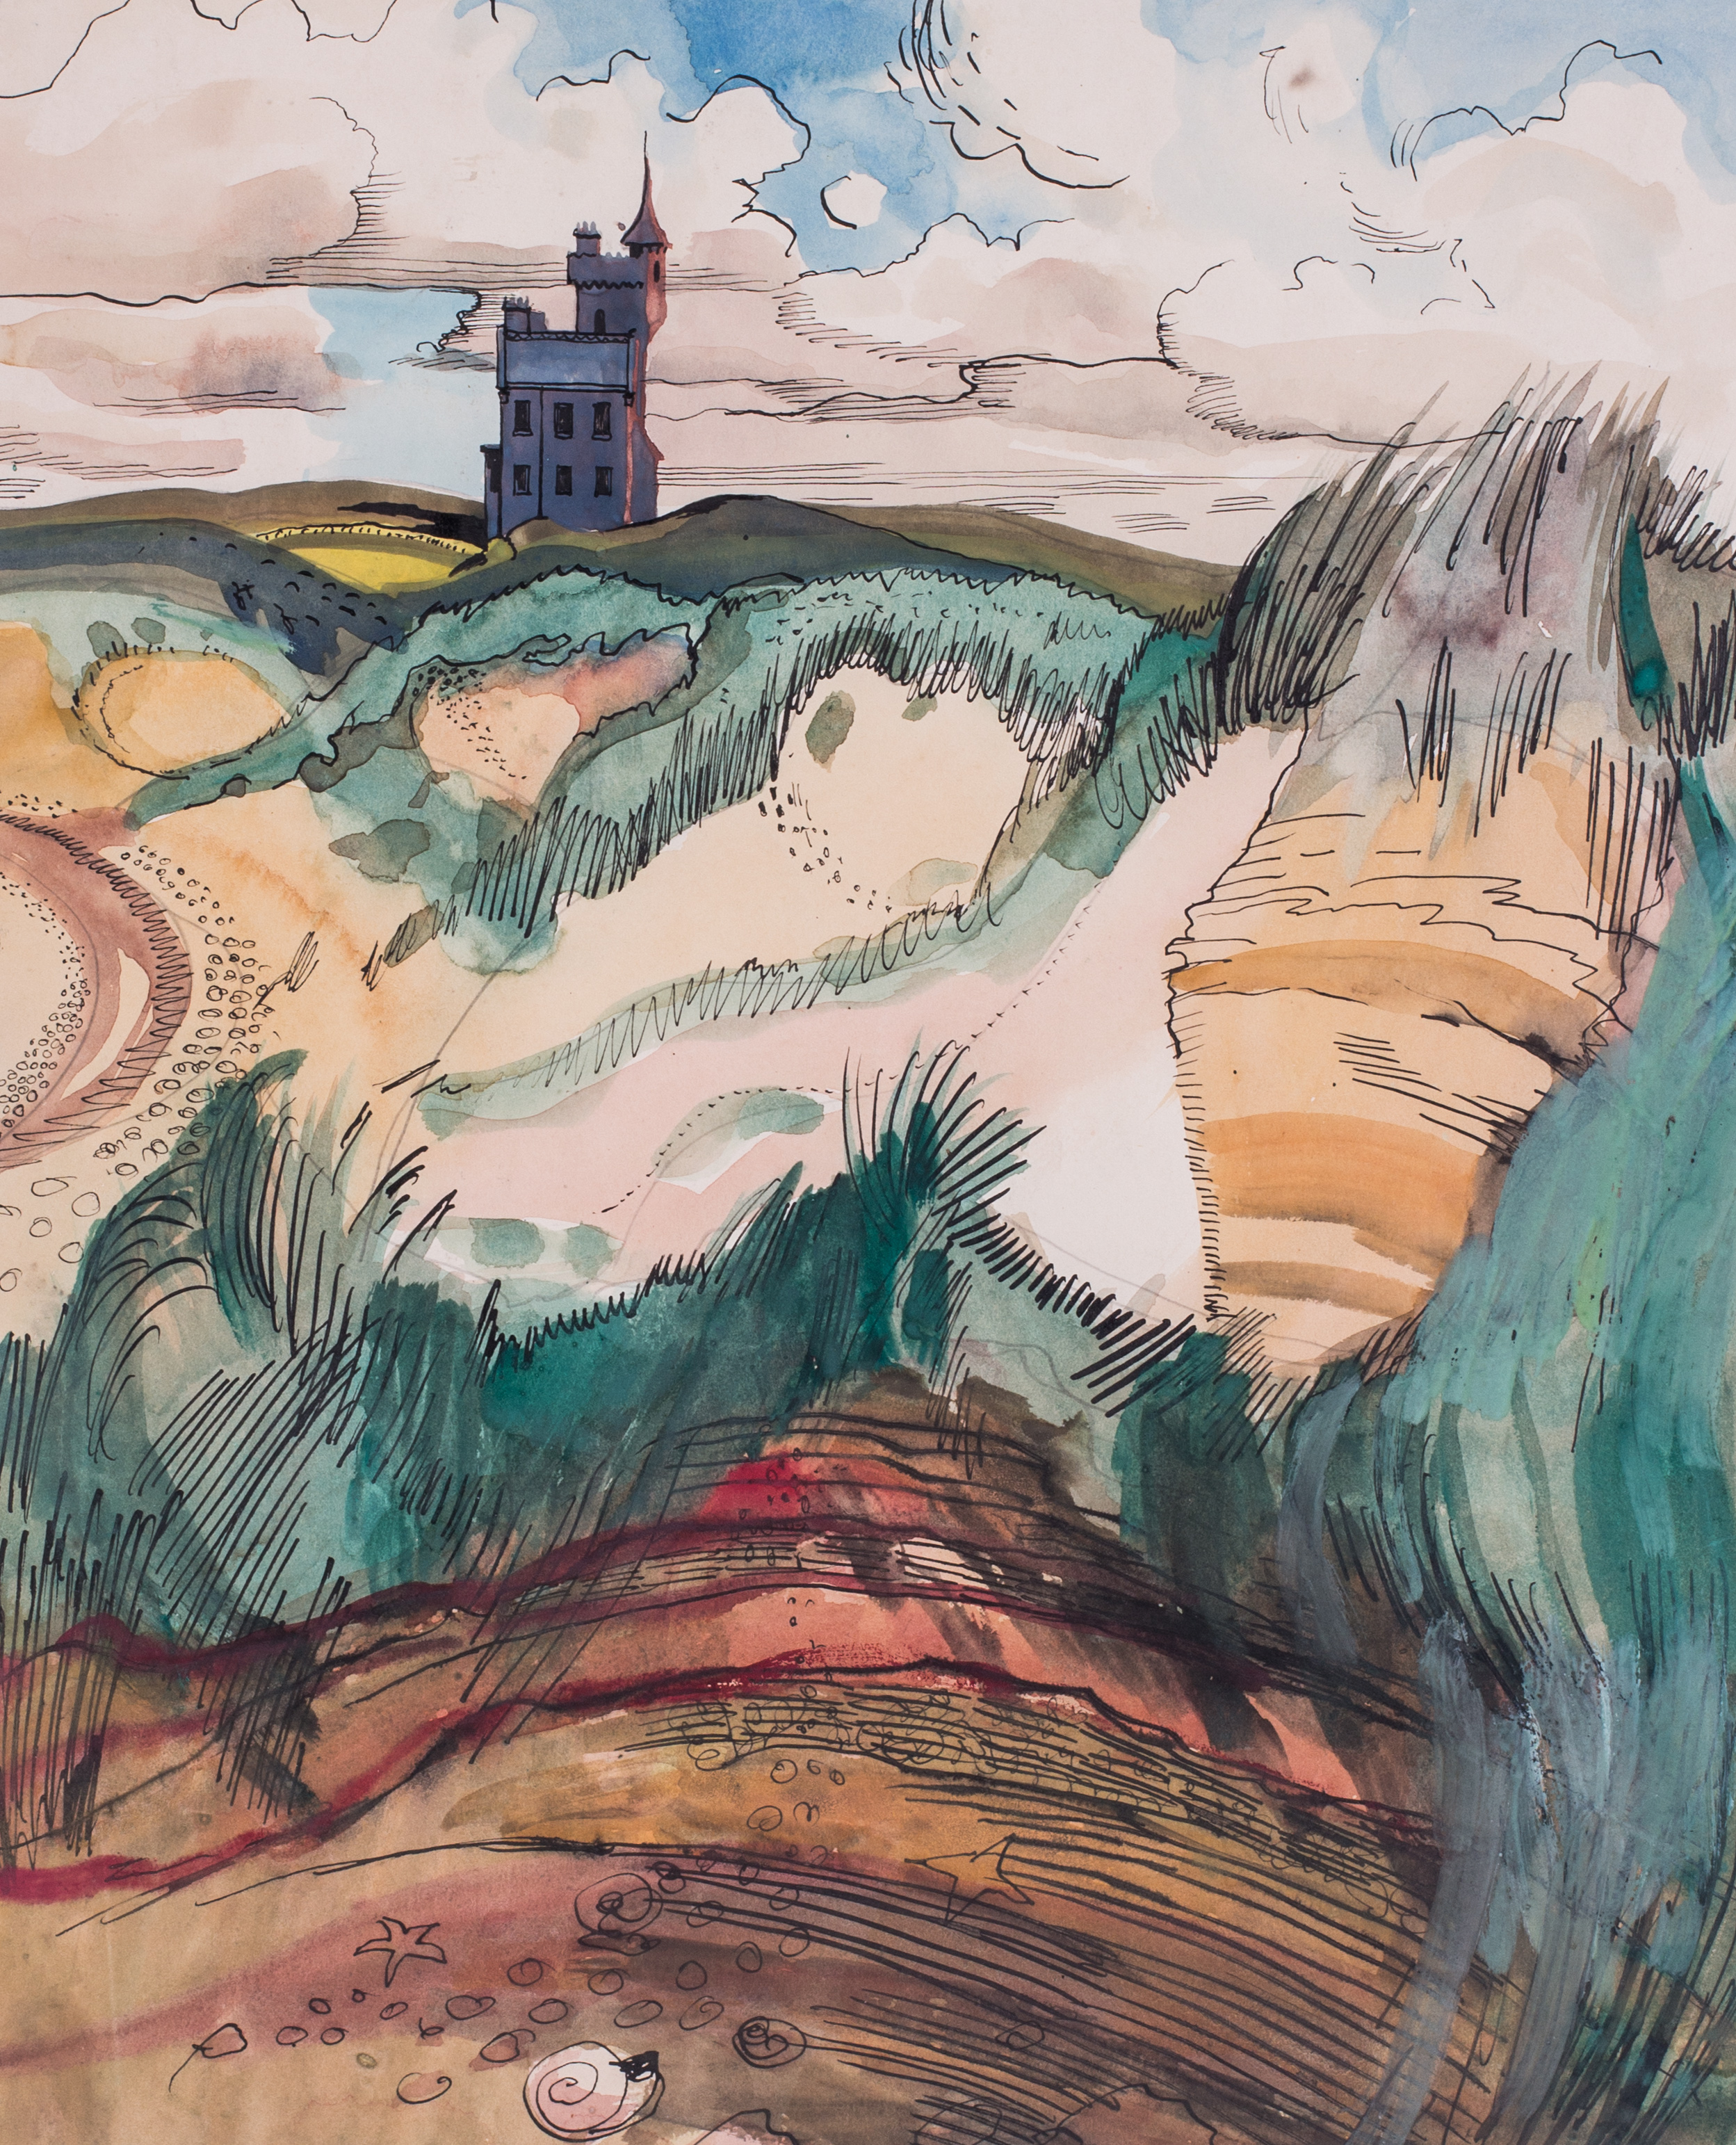 Robert Trenaman Back (British, 1922 - 2004)    A folly by the shore   Pen and ink and watercolour on paper  13 x 10.1/2in. (33 x 27cm.)   Price: £850